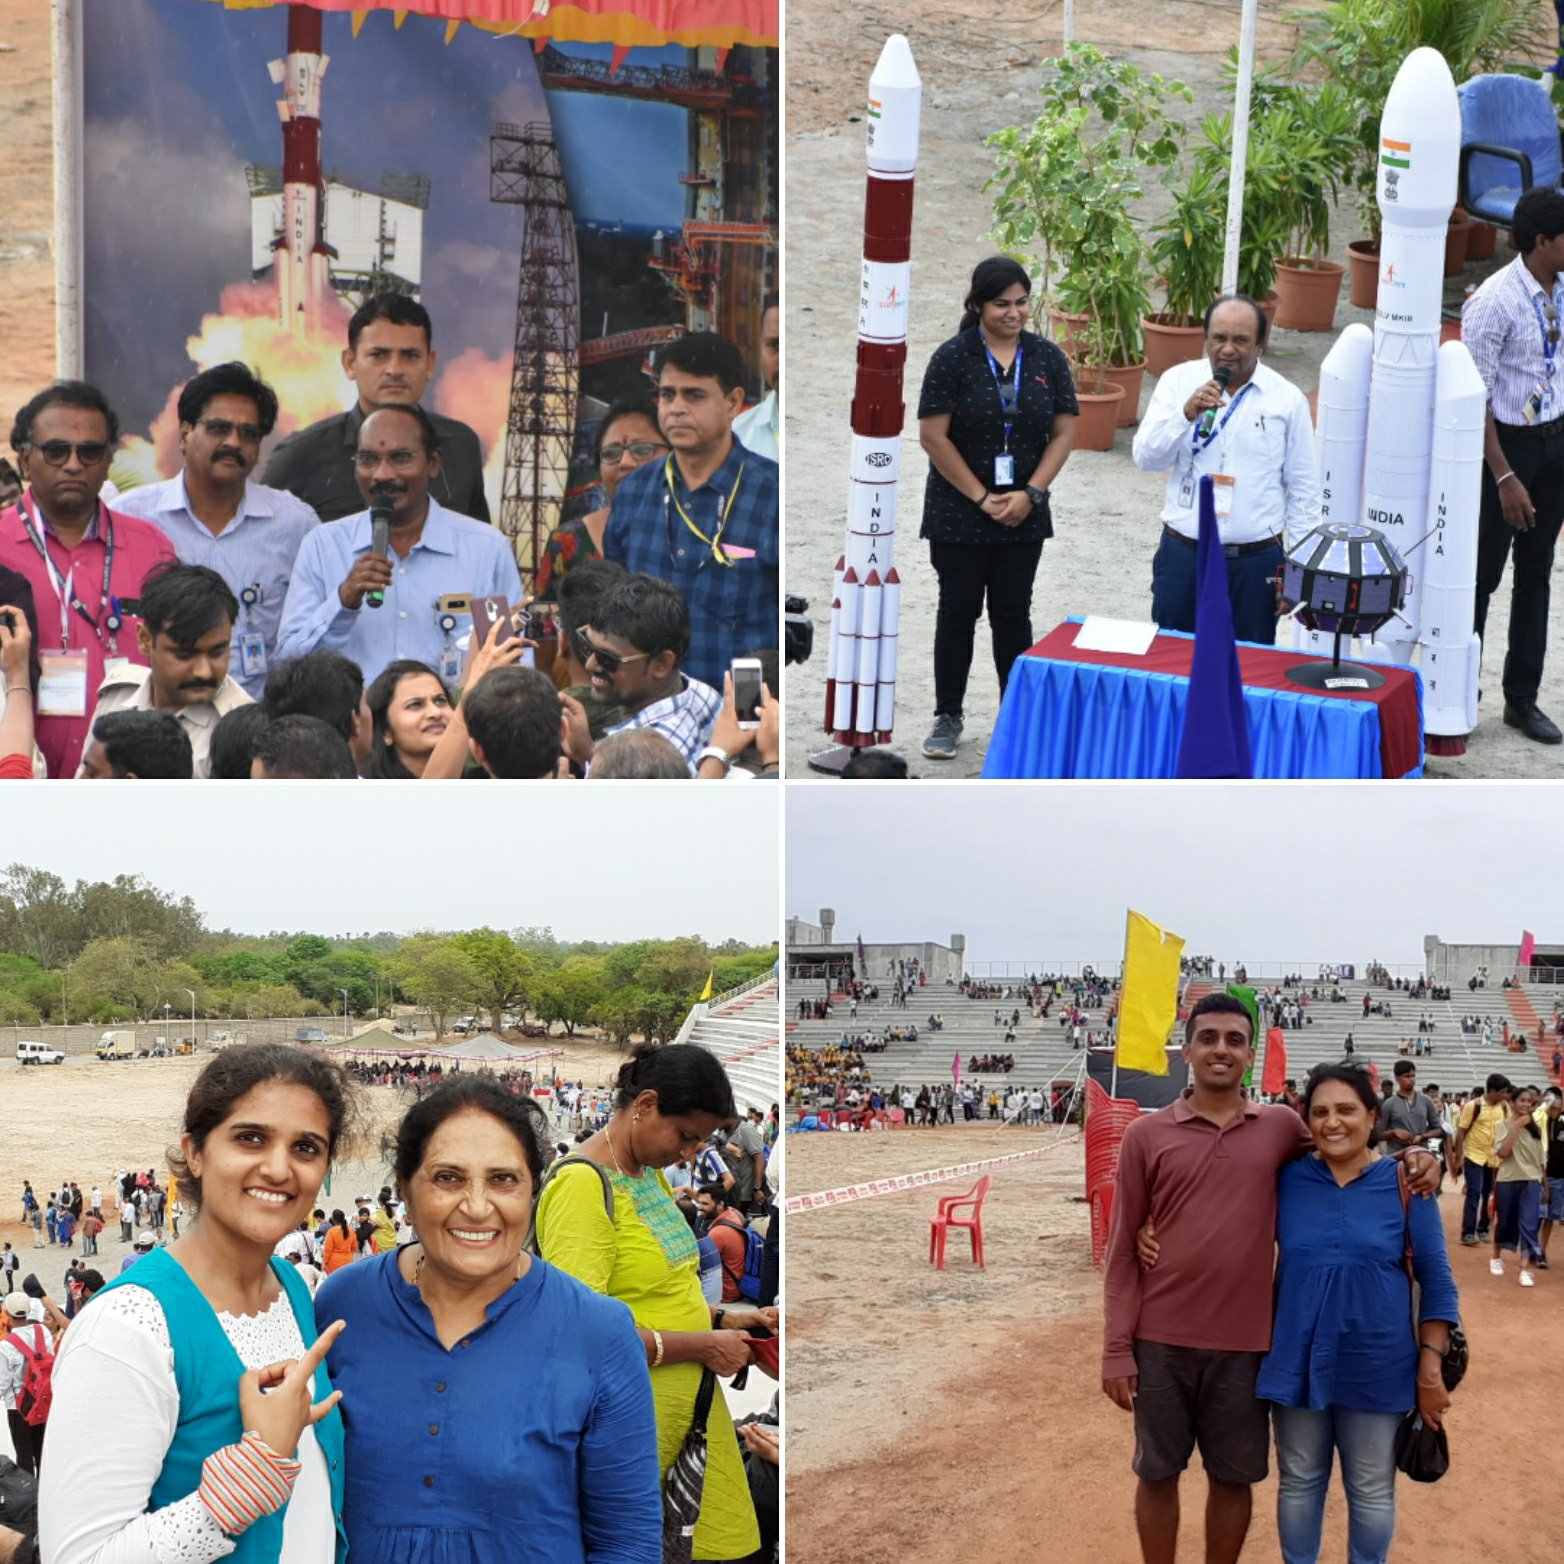 From top right clockwise: 1: ISRO Chairman Mr.K.Sivan addressing the crowd, 2.Mr.Ranganathan, project director for Chandrayaan stage 1; 3: My brother and mom in the crowd; 4: Mom and myself after the launch